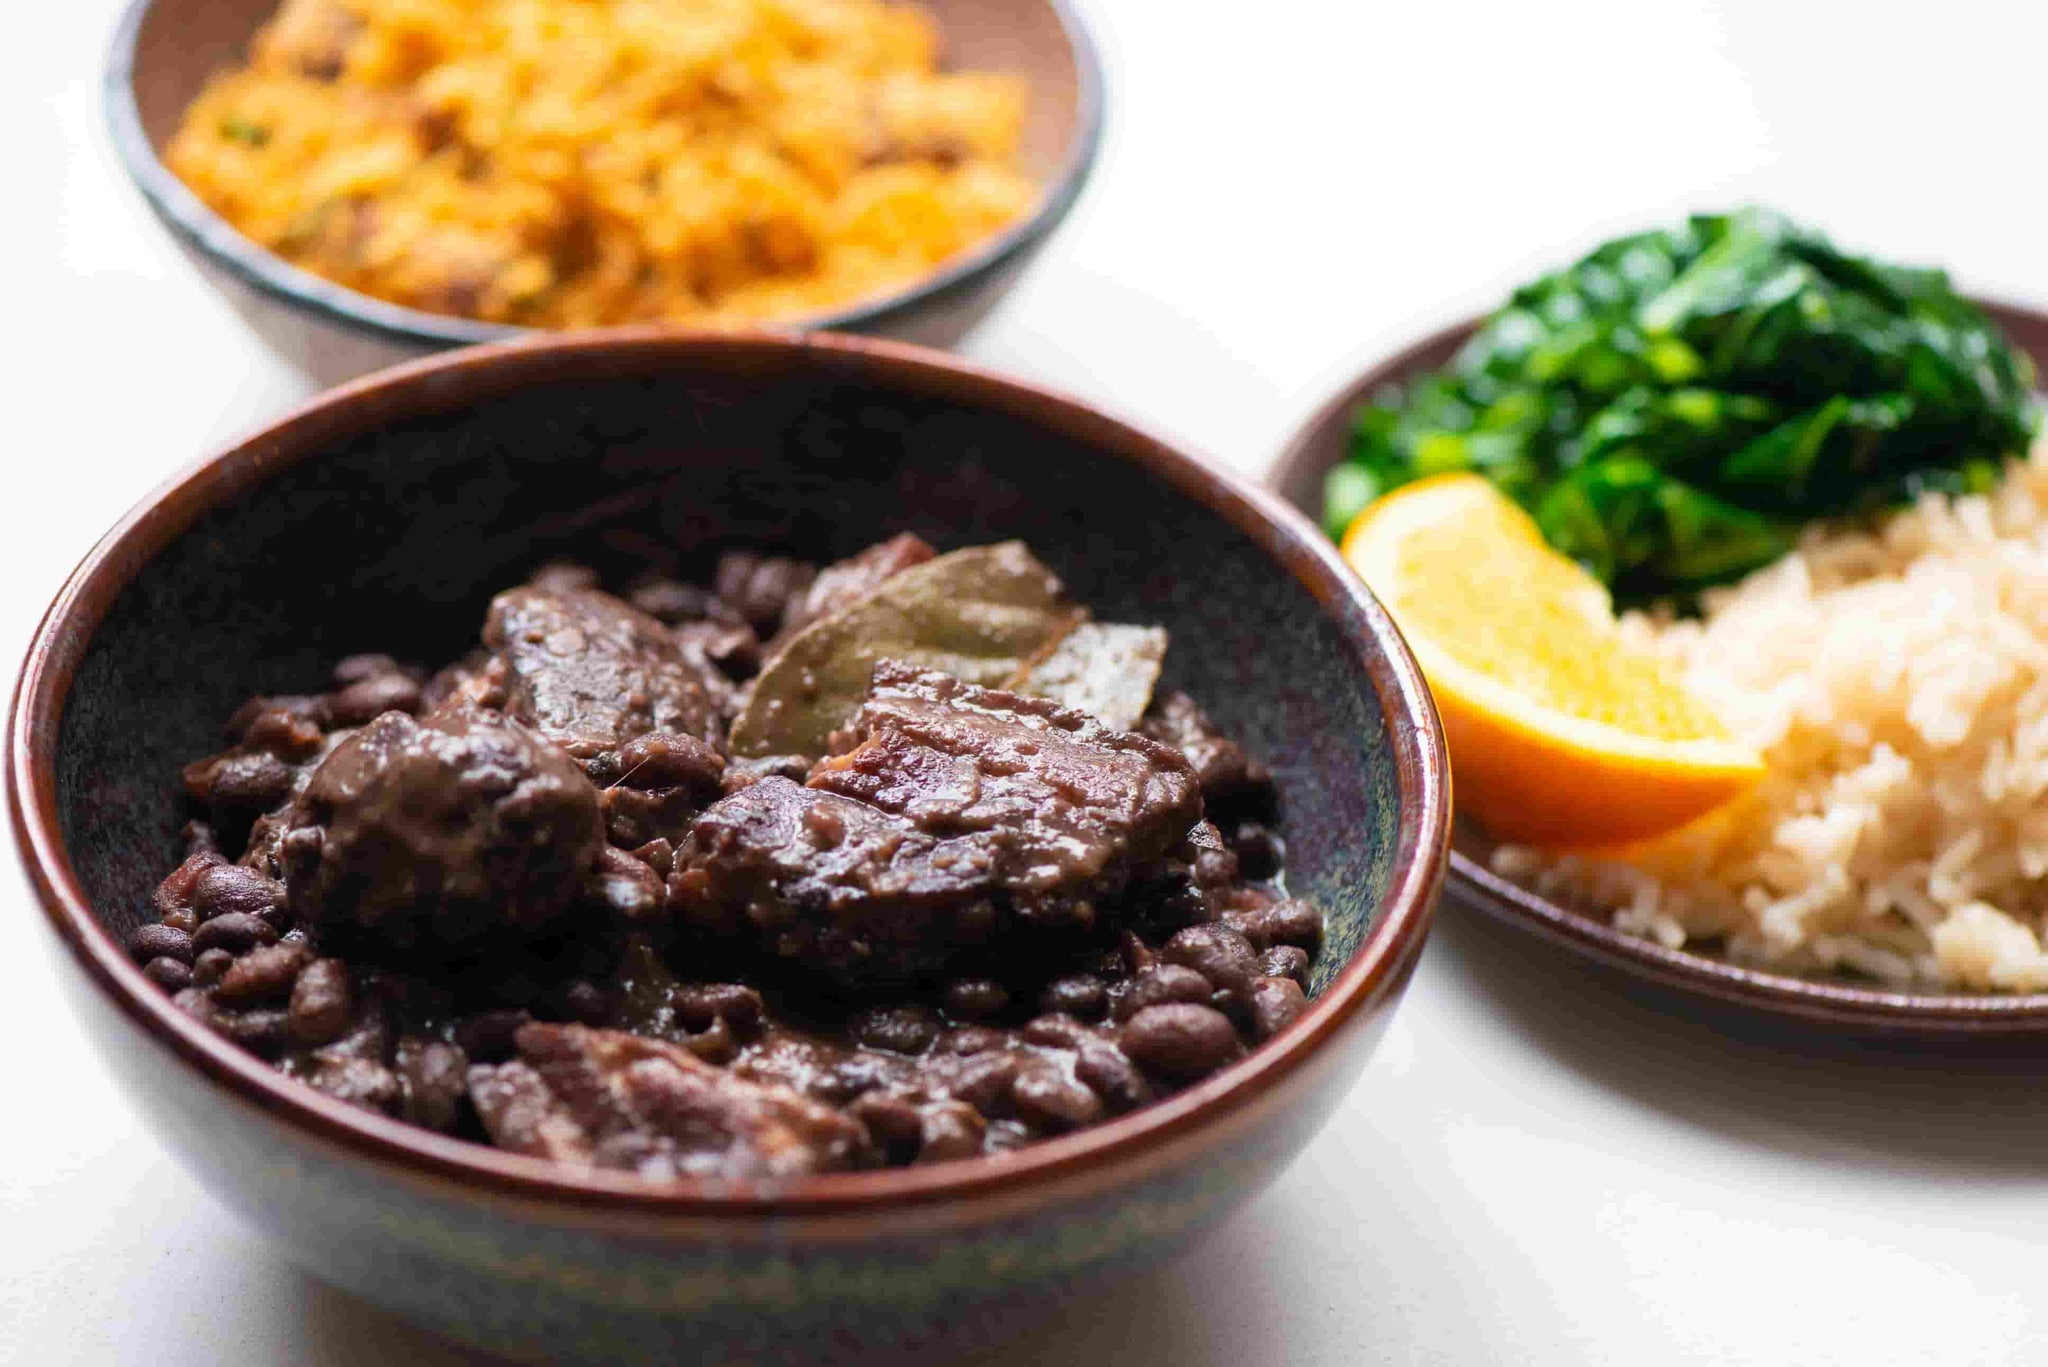 Feijoada Recipe - Brazilian Black Bean and Meat Stew